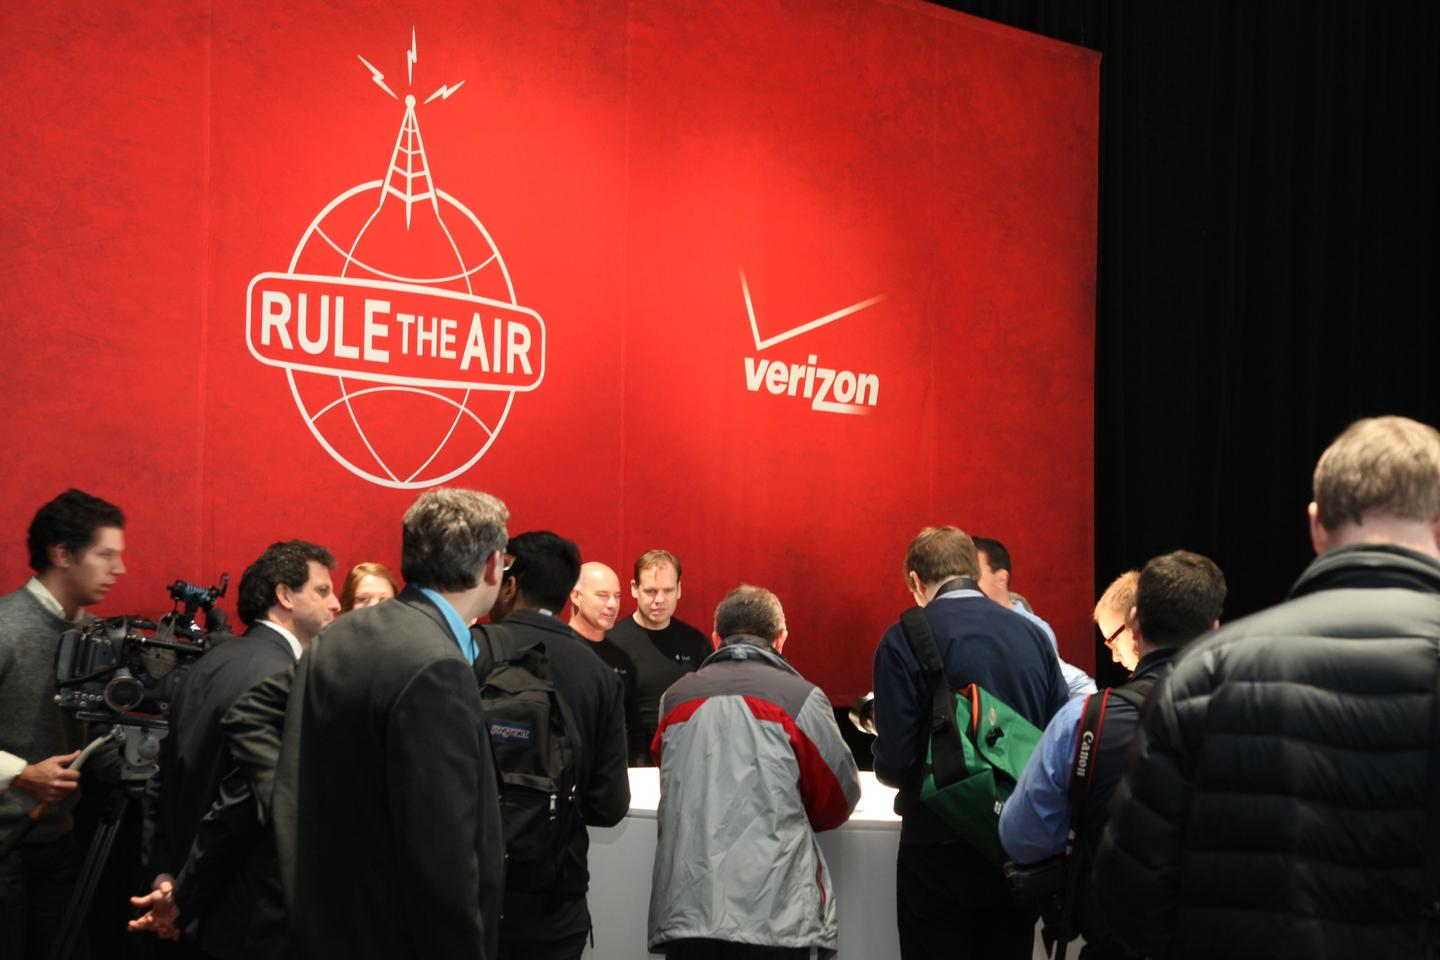 The Apple/Verizon press conference in New York City